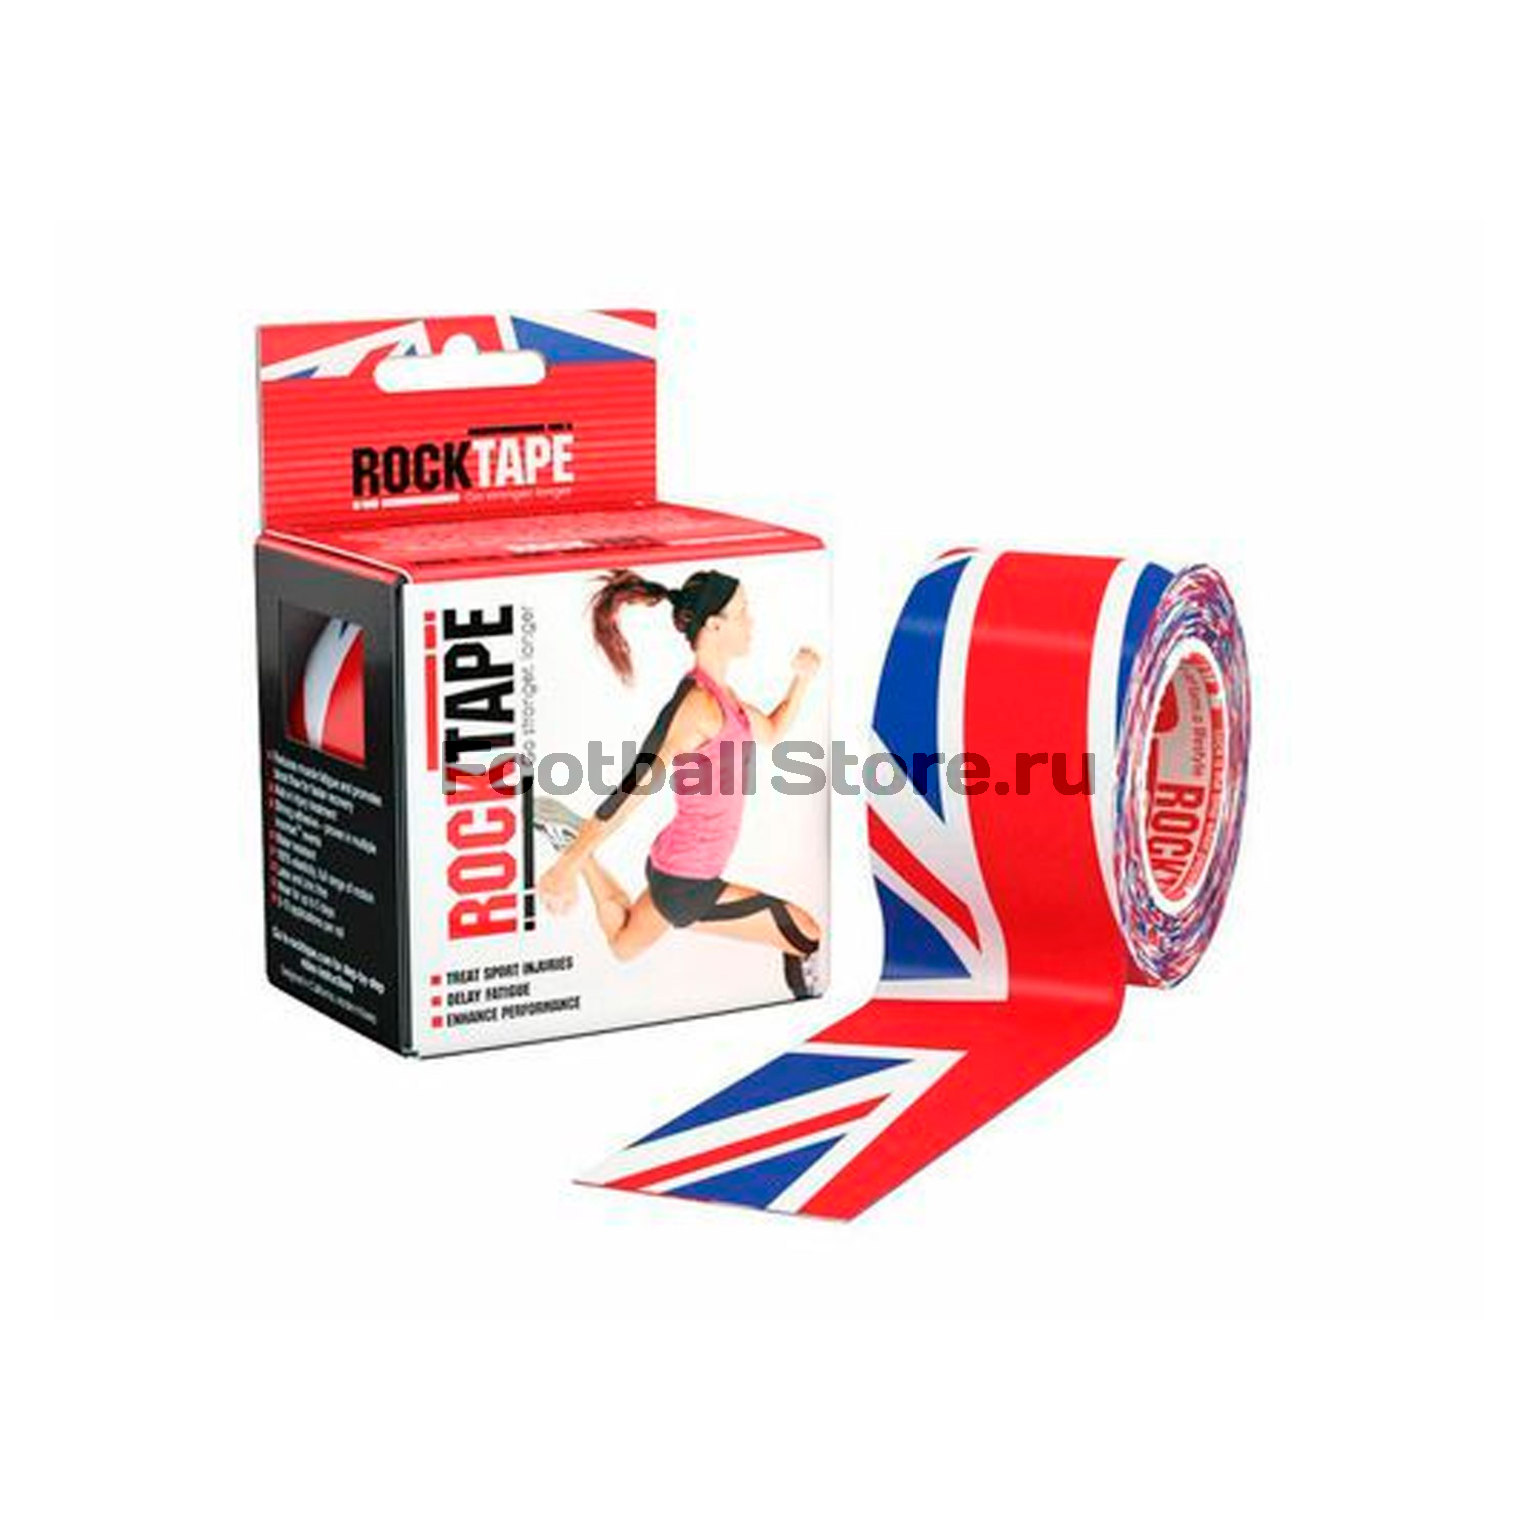 Тейп Кинезио Rocktape, design 5см х 5м тейп кинезио rocktape design череп 5см х 5м